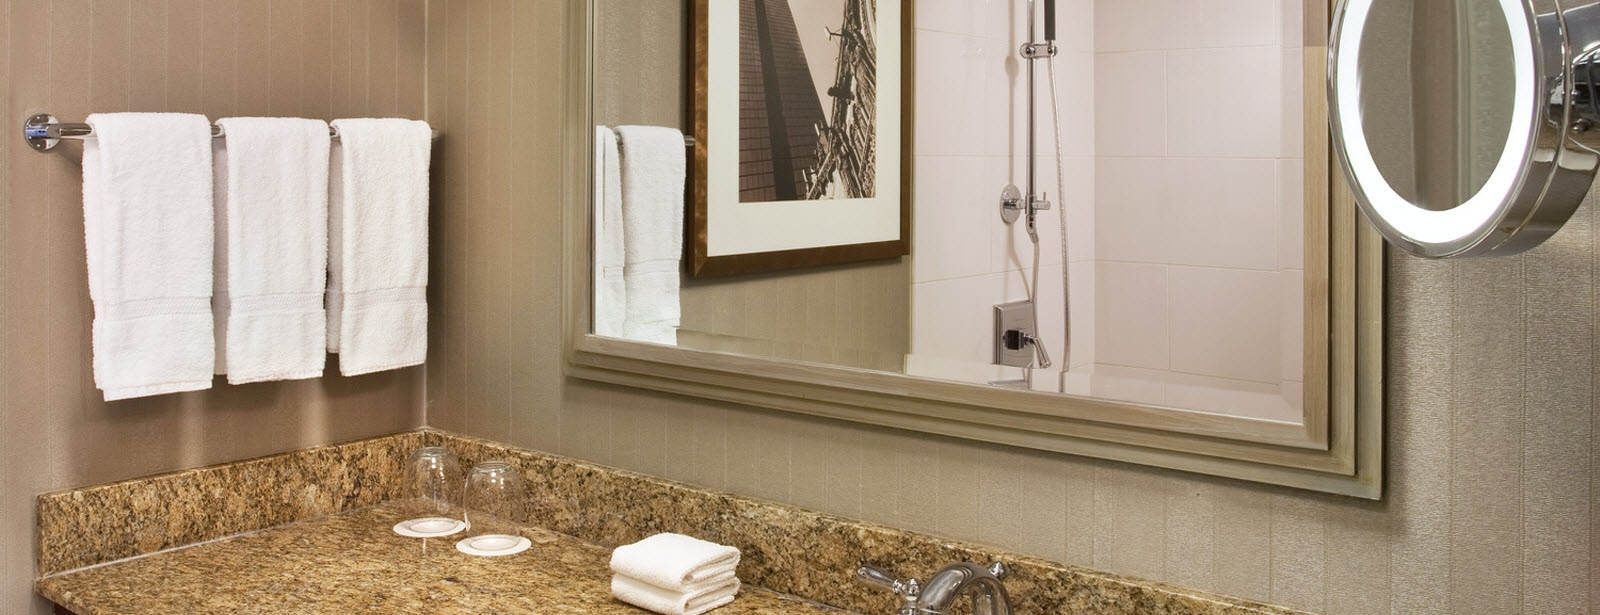 The Westin Copley Place, Boston studio suite bathroom